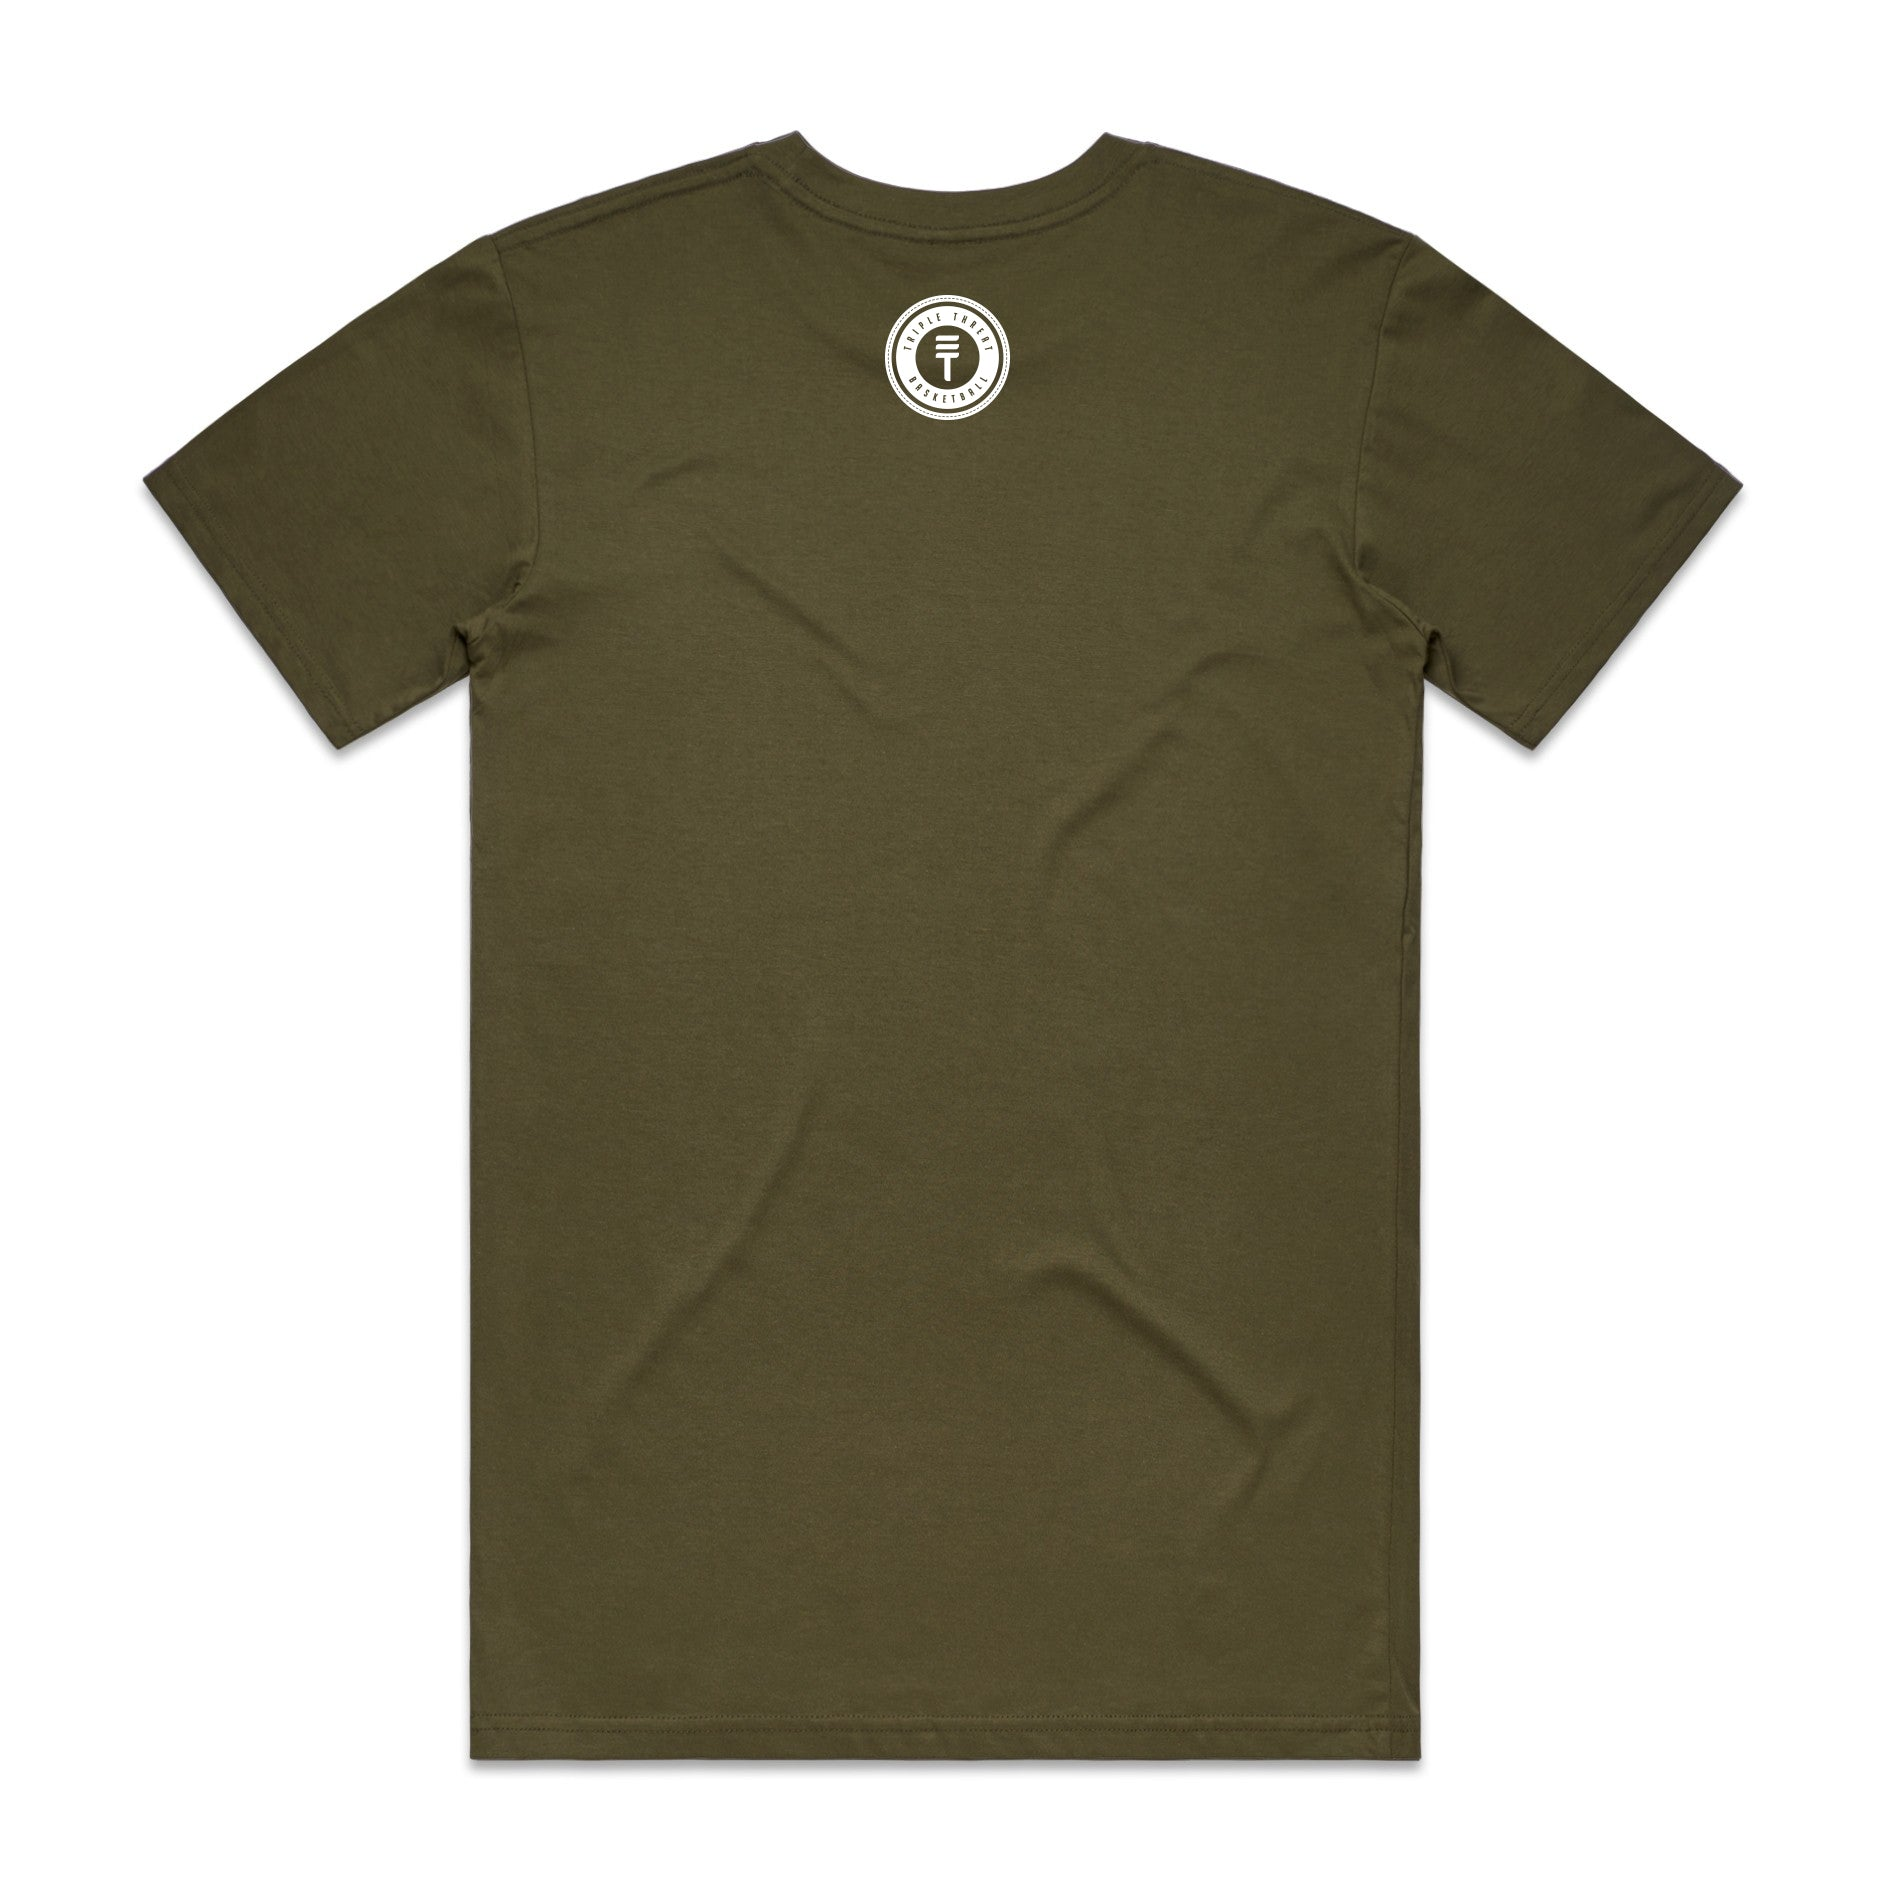 NEWTOWN T-SHIRT - ARMY